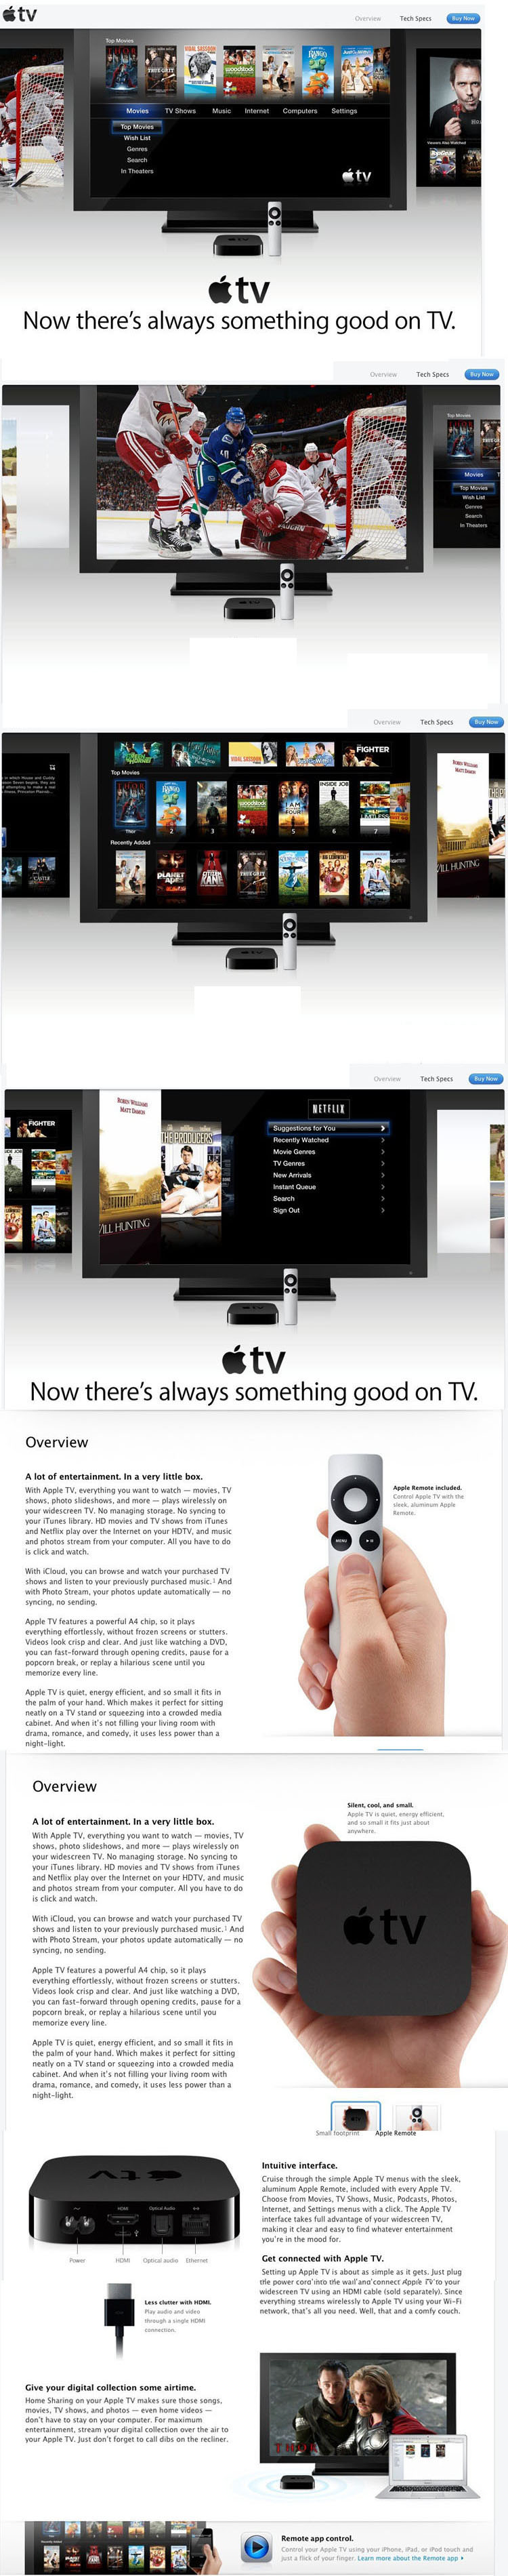 how to set up apple tv 2nd generation